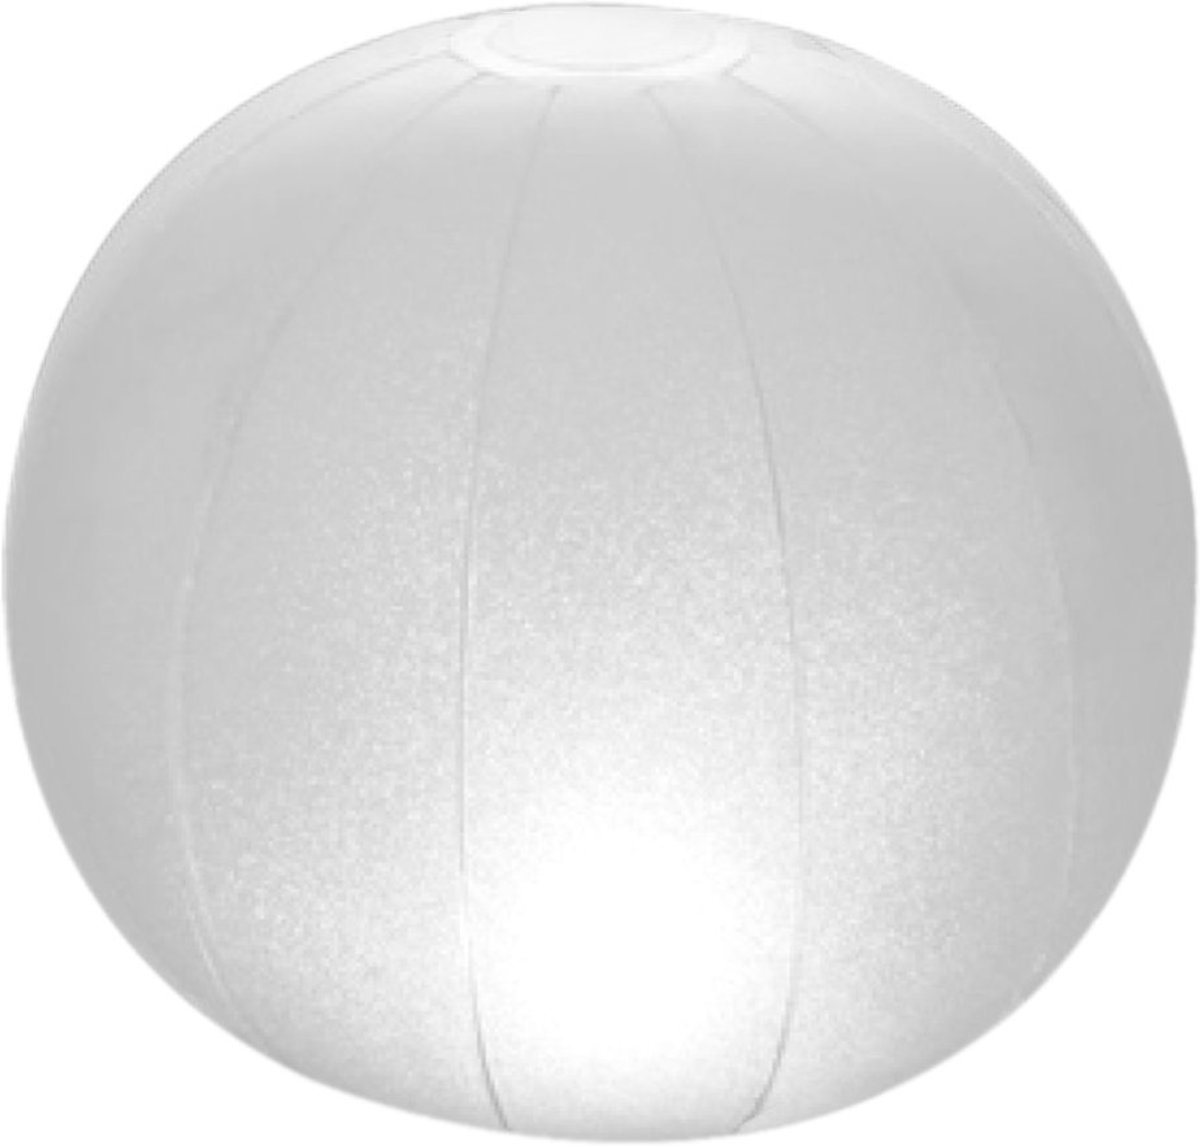 Drijvende led lichtbal / Floating led ball 23cm x 22cm - Intex